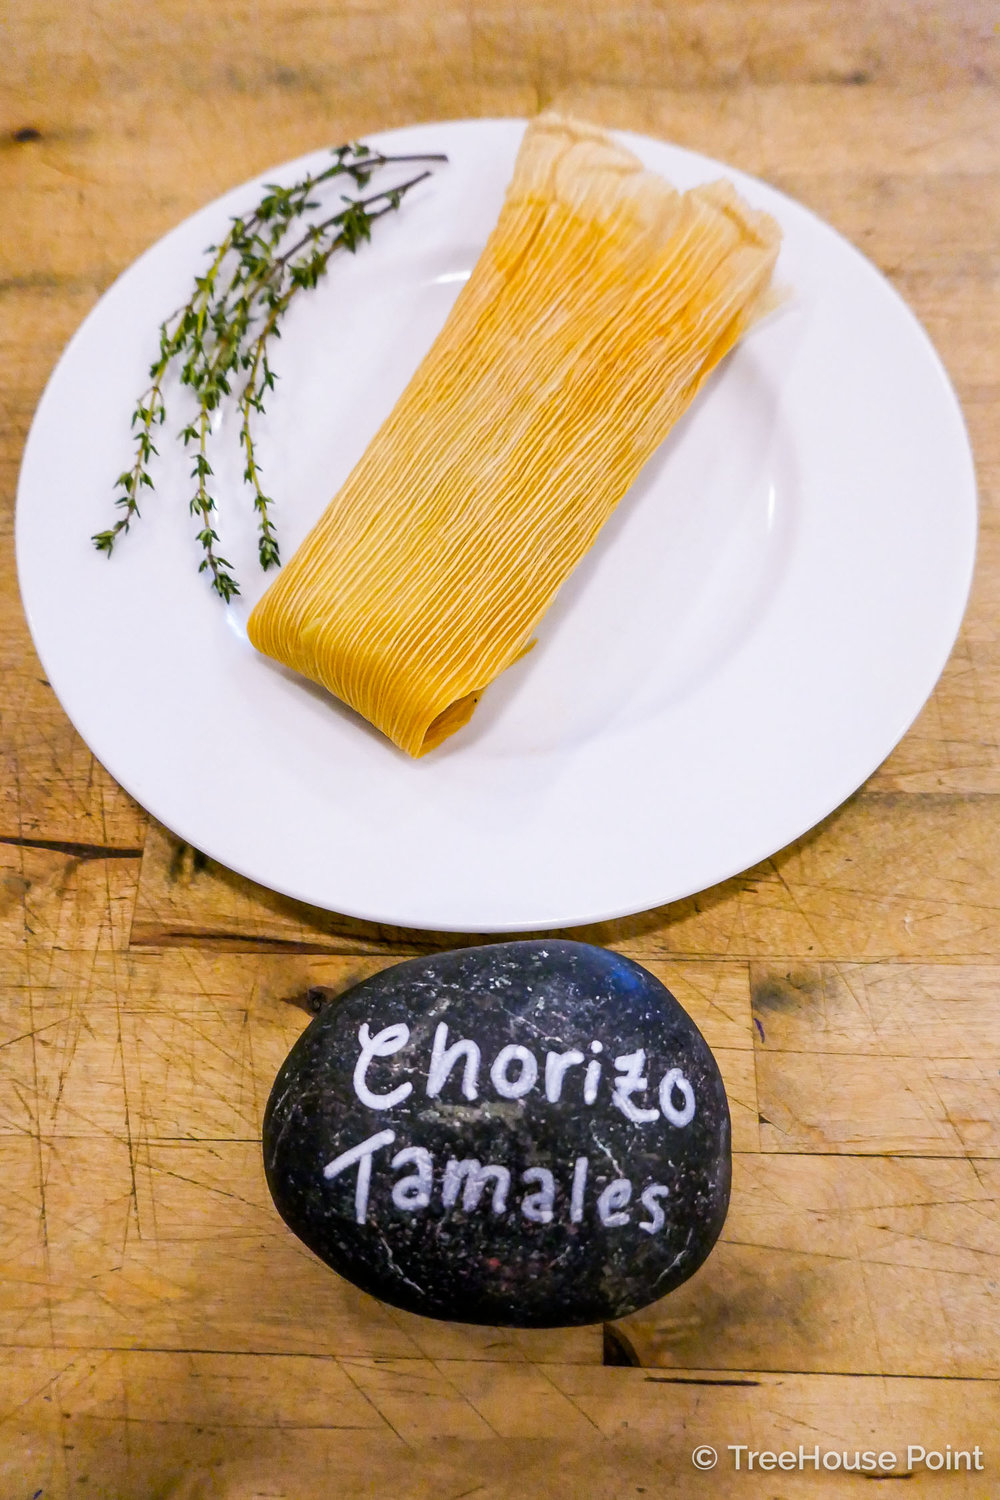 TreeHouse Point Tamales